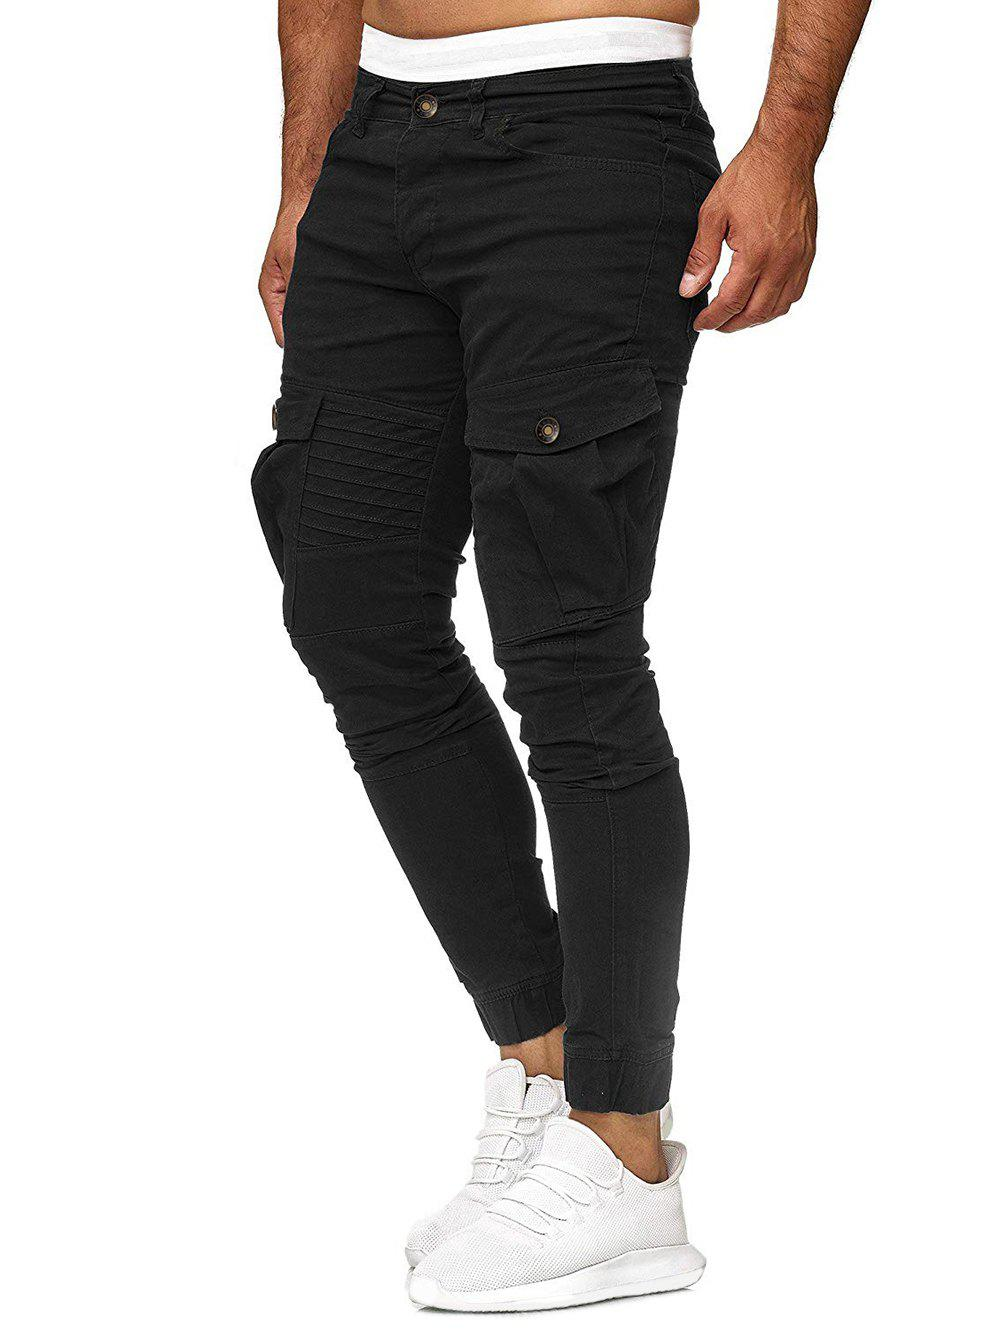 Shop Solid Color Pleated Flap Pocket Casual Jogger Pants